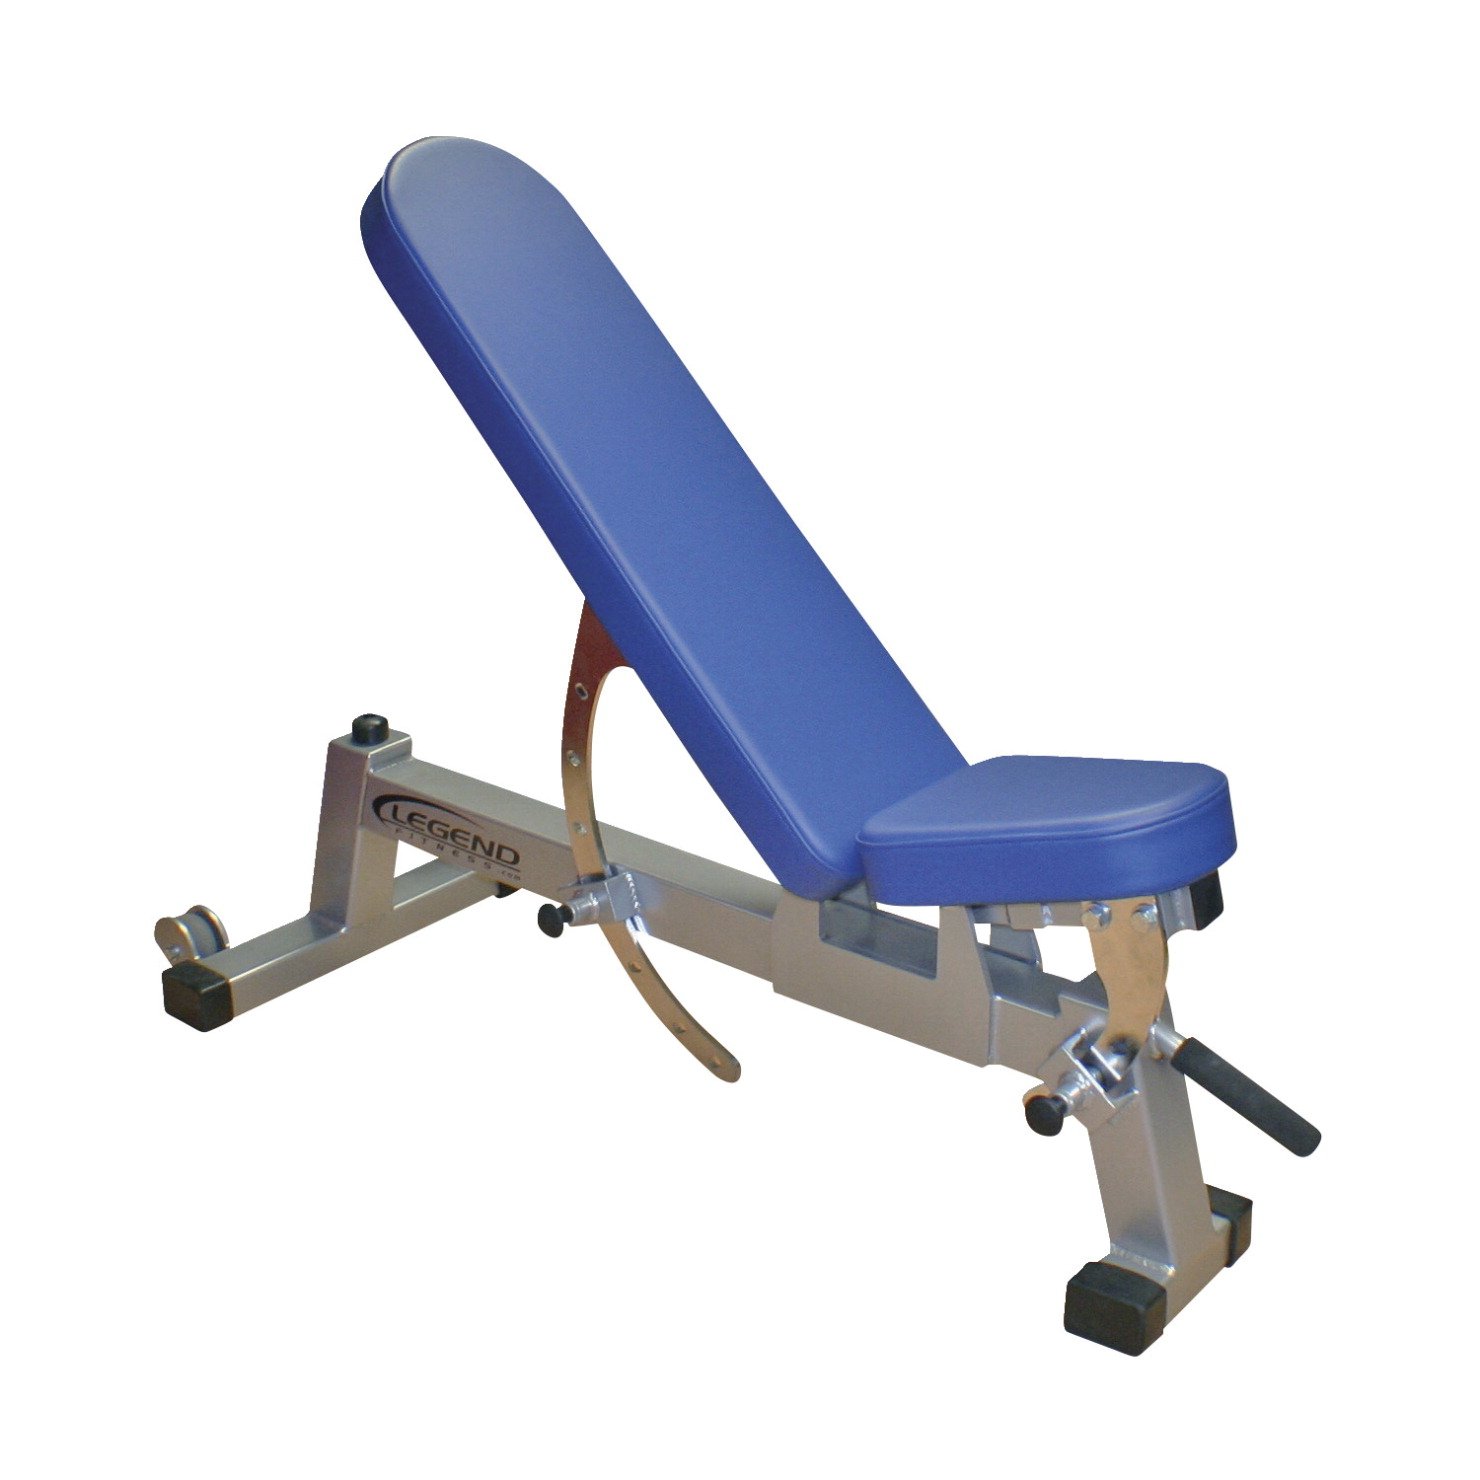 Legend 3-Way Utility Bench, 44 x 20-1/2 x 24 Inches, 93 Pounds